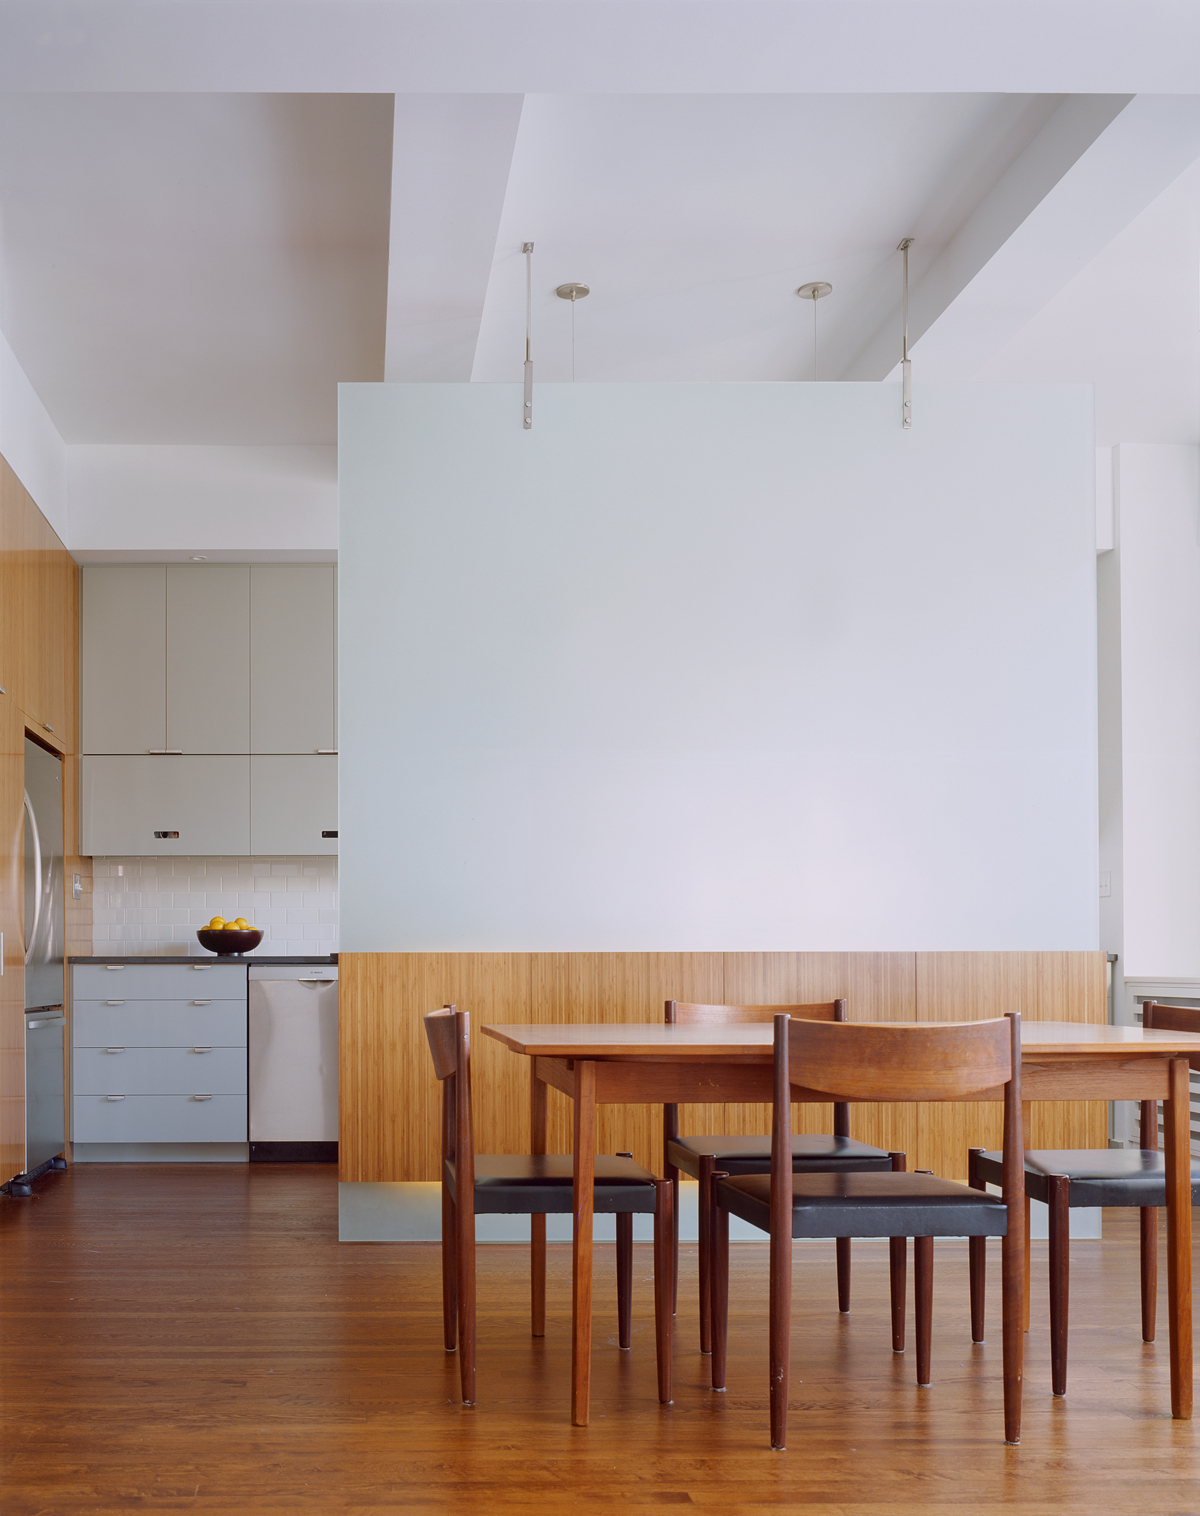 New York architects created translucent kitchen partition